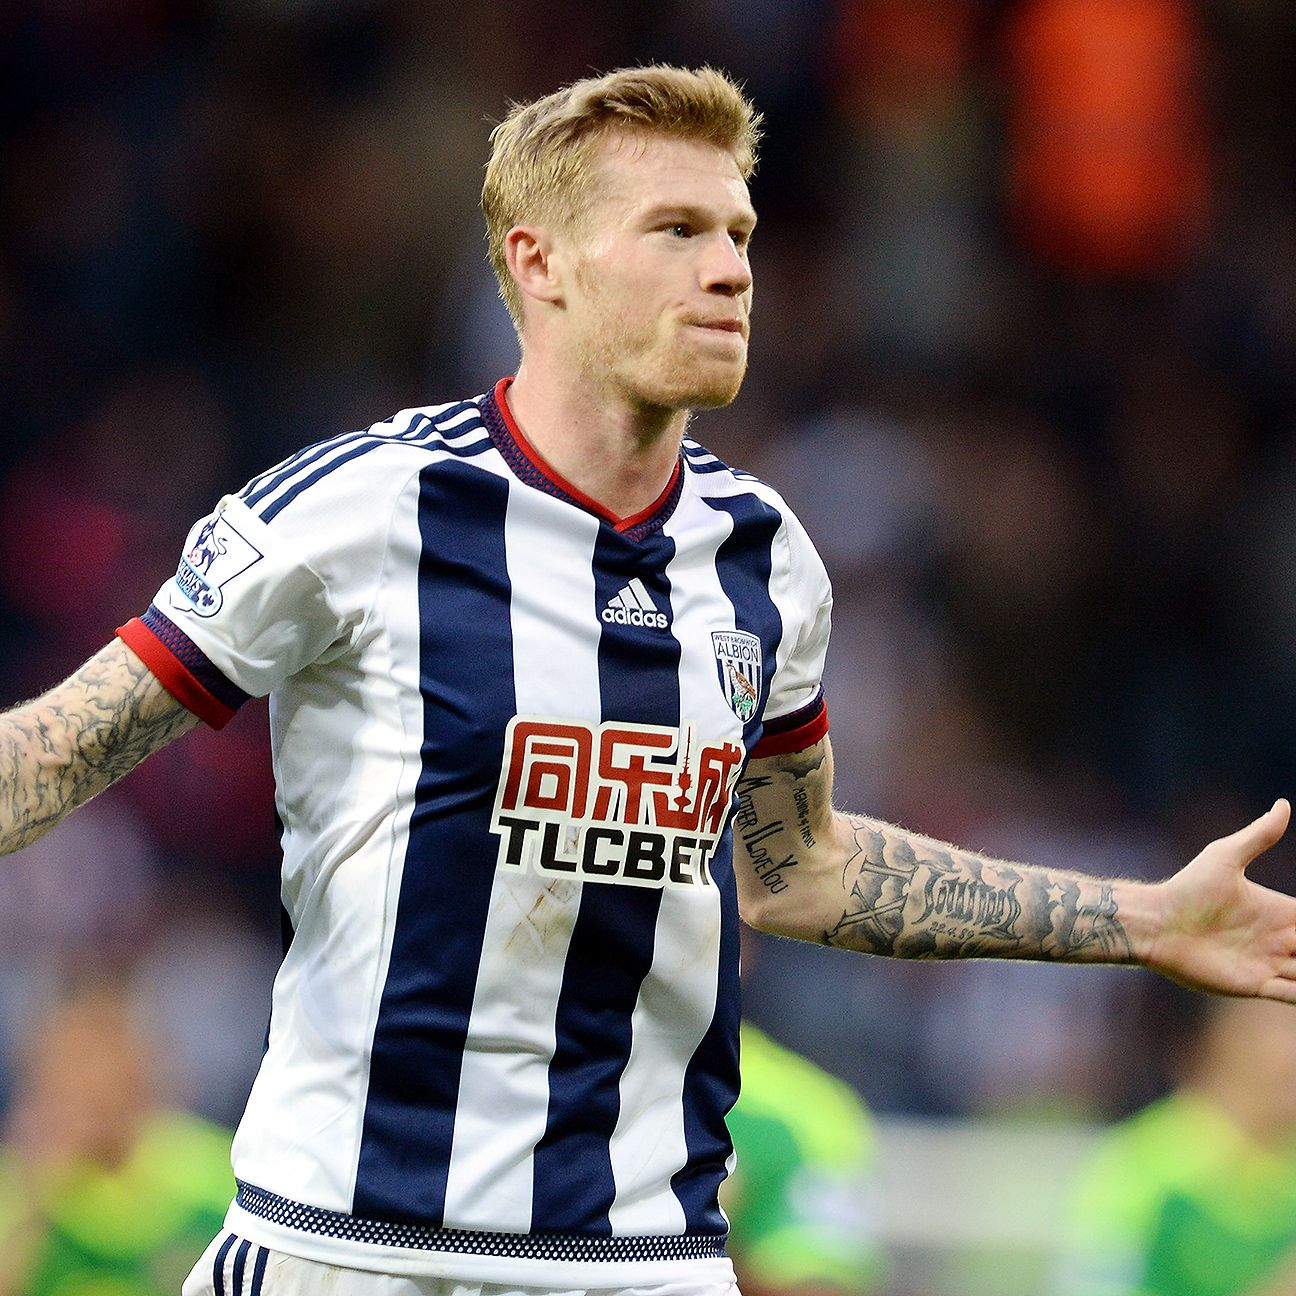 James McClean's work rate will be needed in order for West Brom to get a result on the road at Norwich.